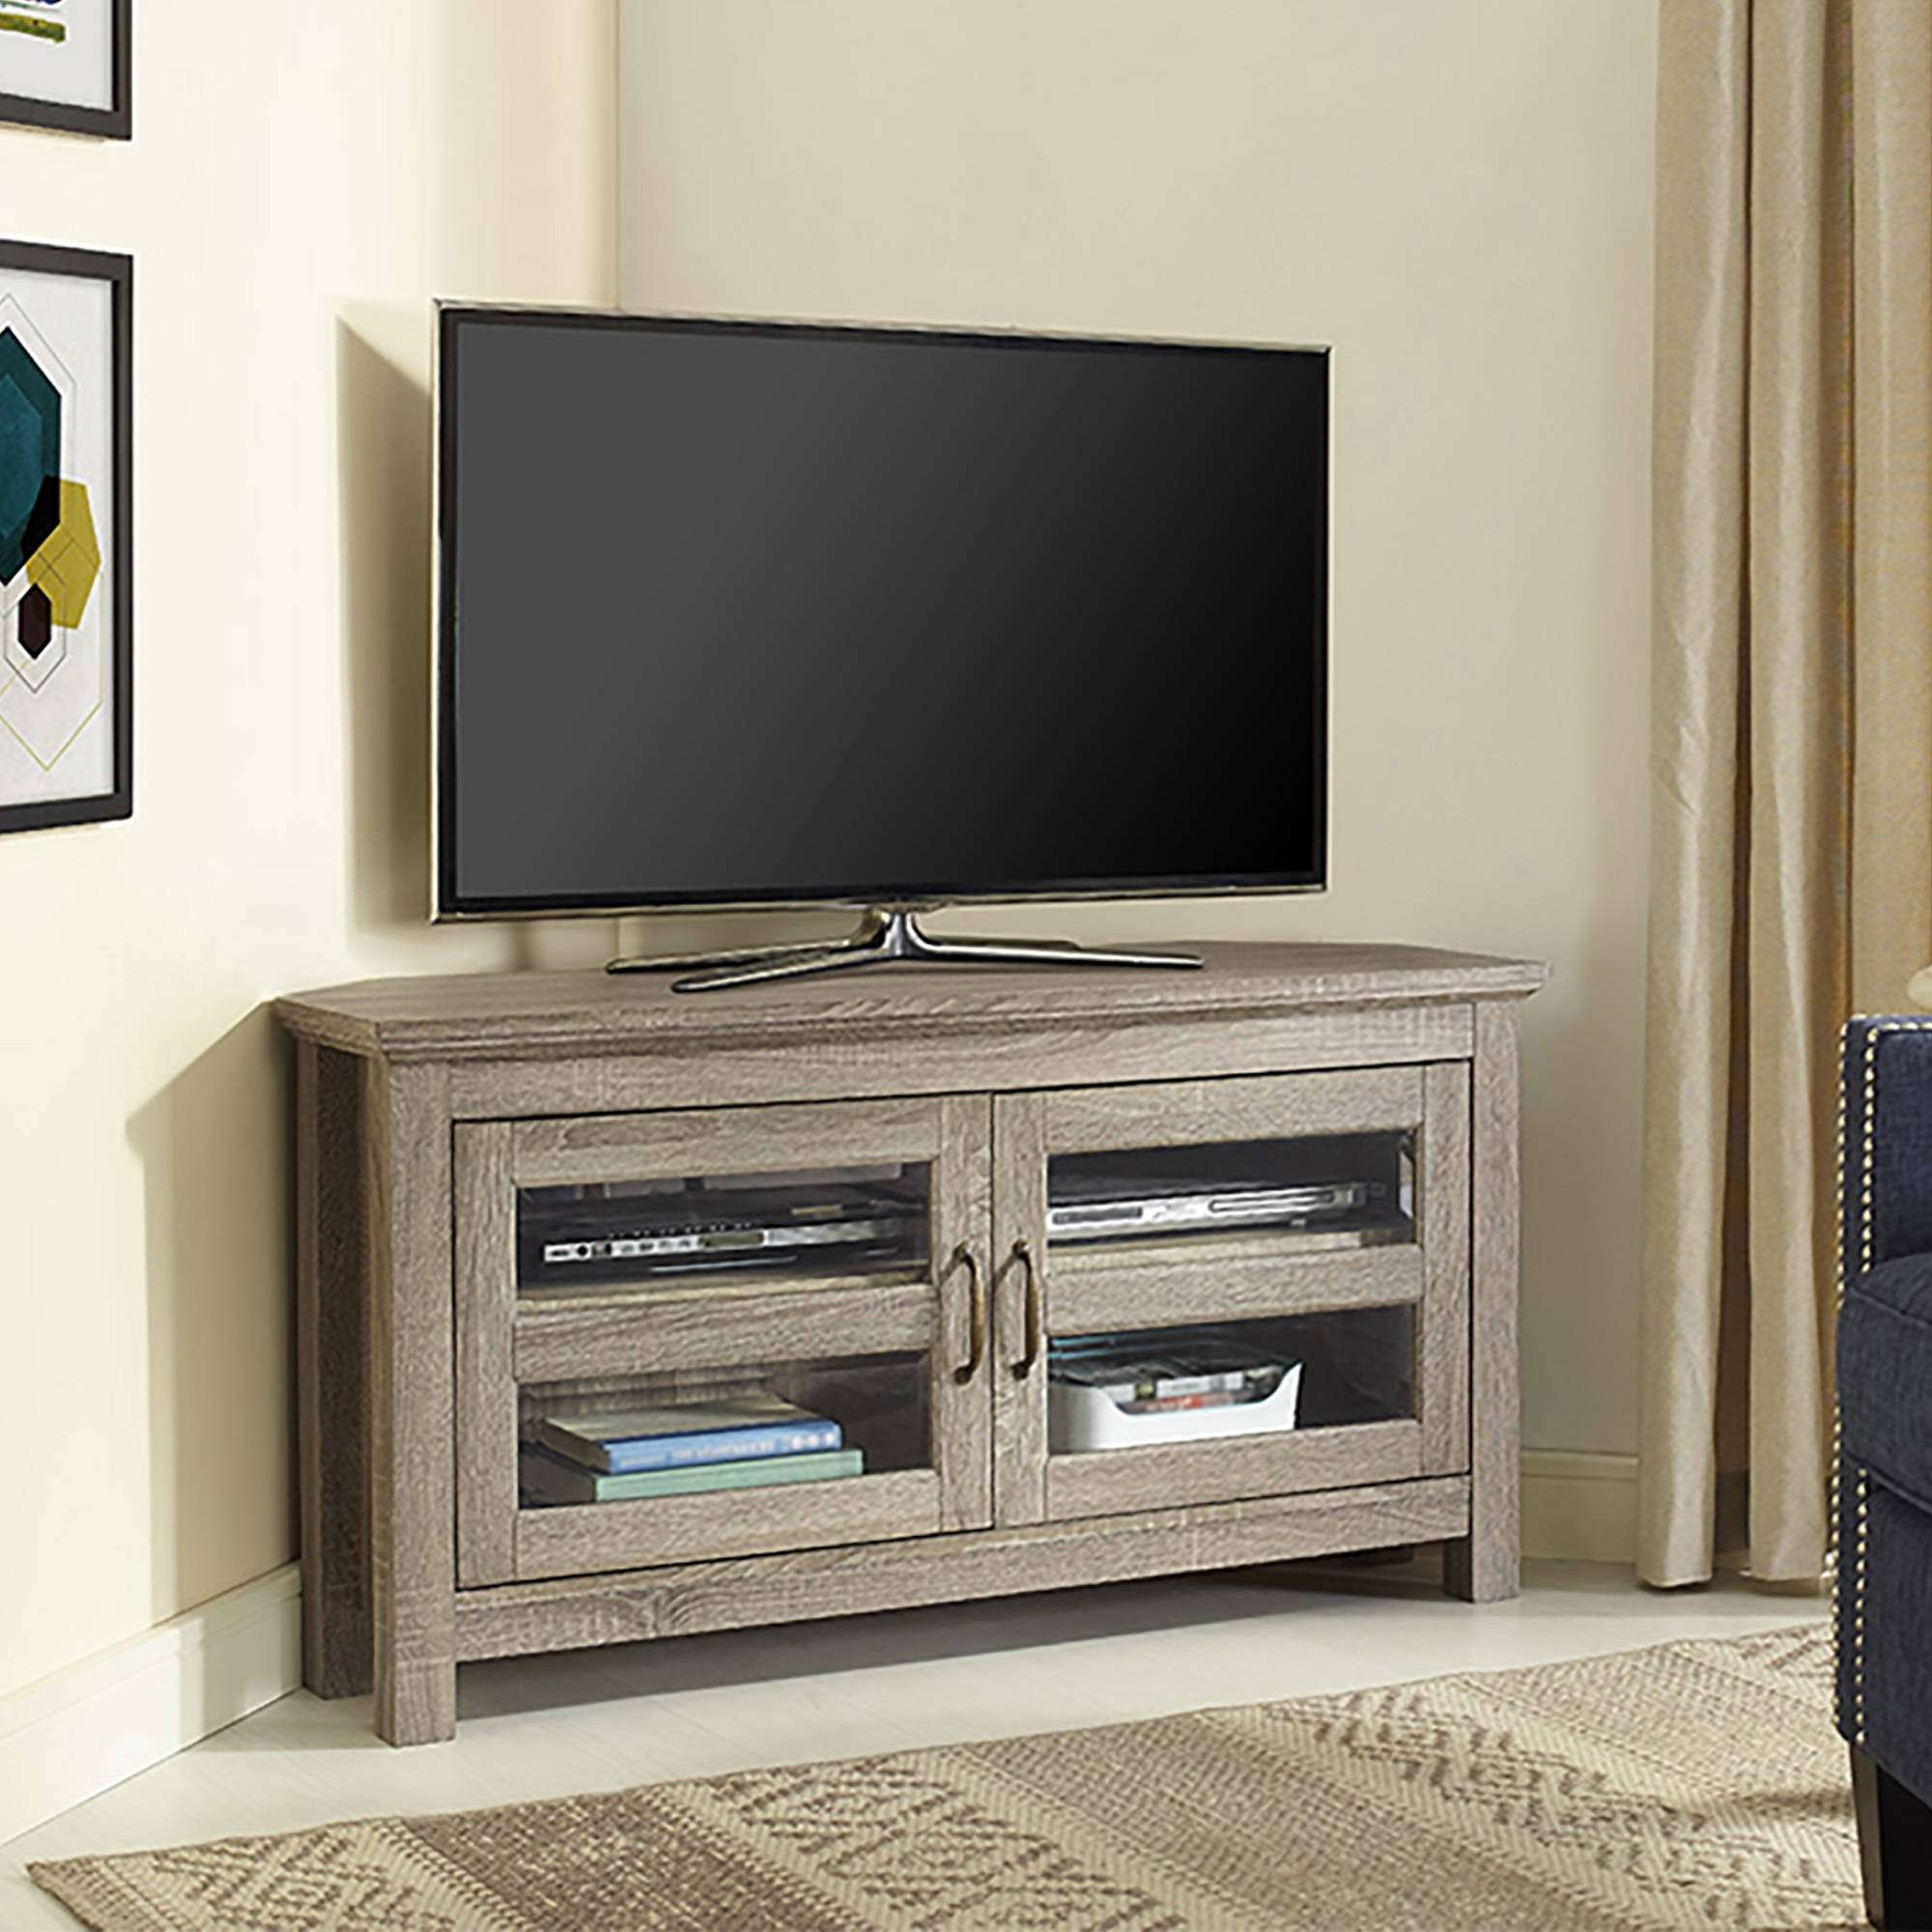 Tv : Shocking Corner Tv Stands 46 Inch Flat Screen Delightful Intended For Corner Tv Stands For 46 Inch Flat Screen (View 6 of 15)